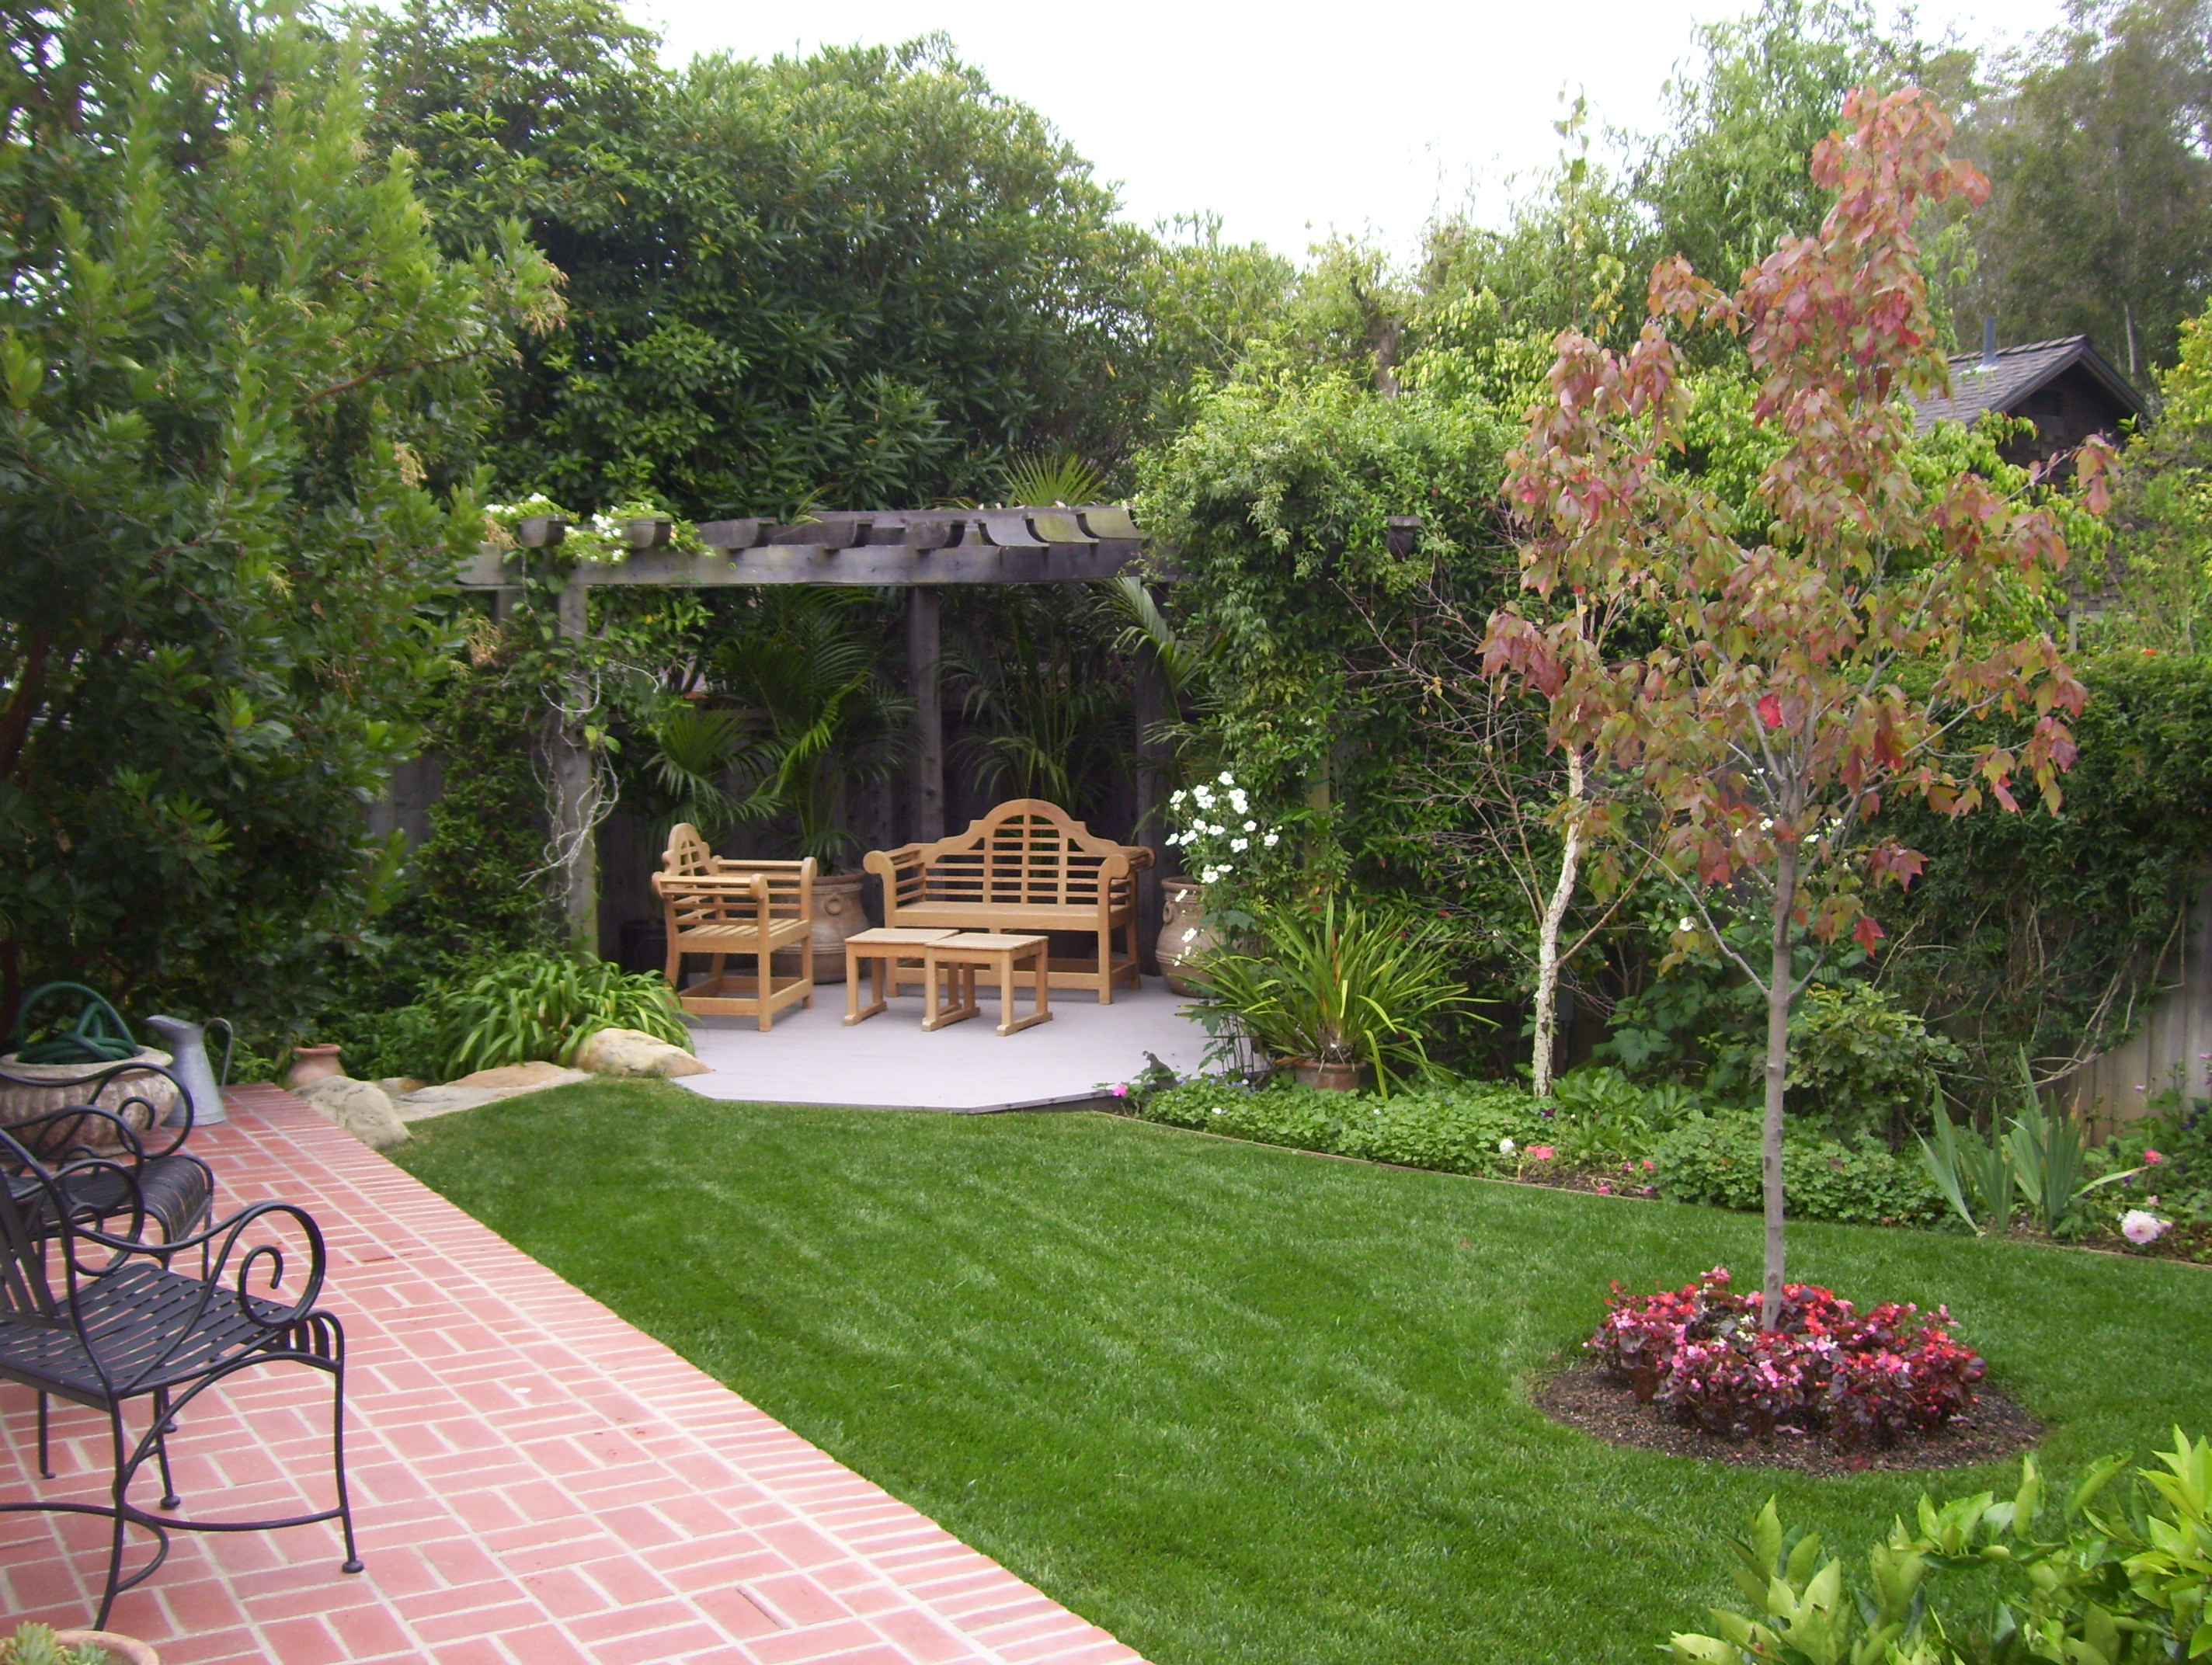 Landscape Hardscape And Softscape Hardscape And Softscape